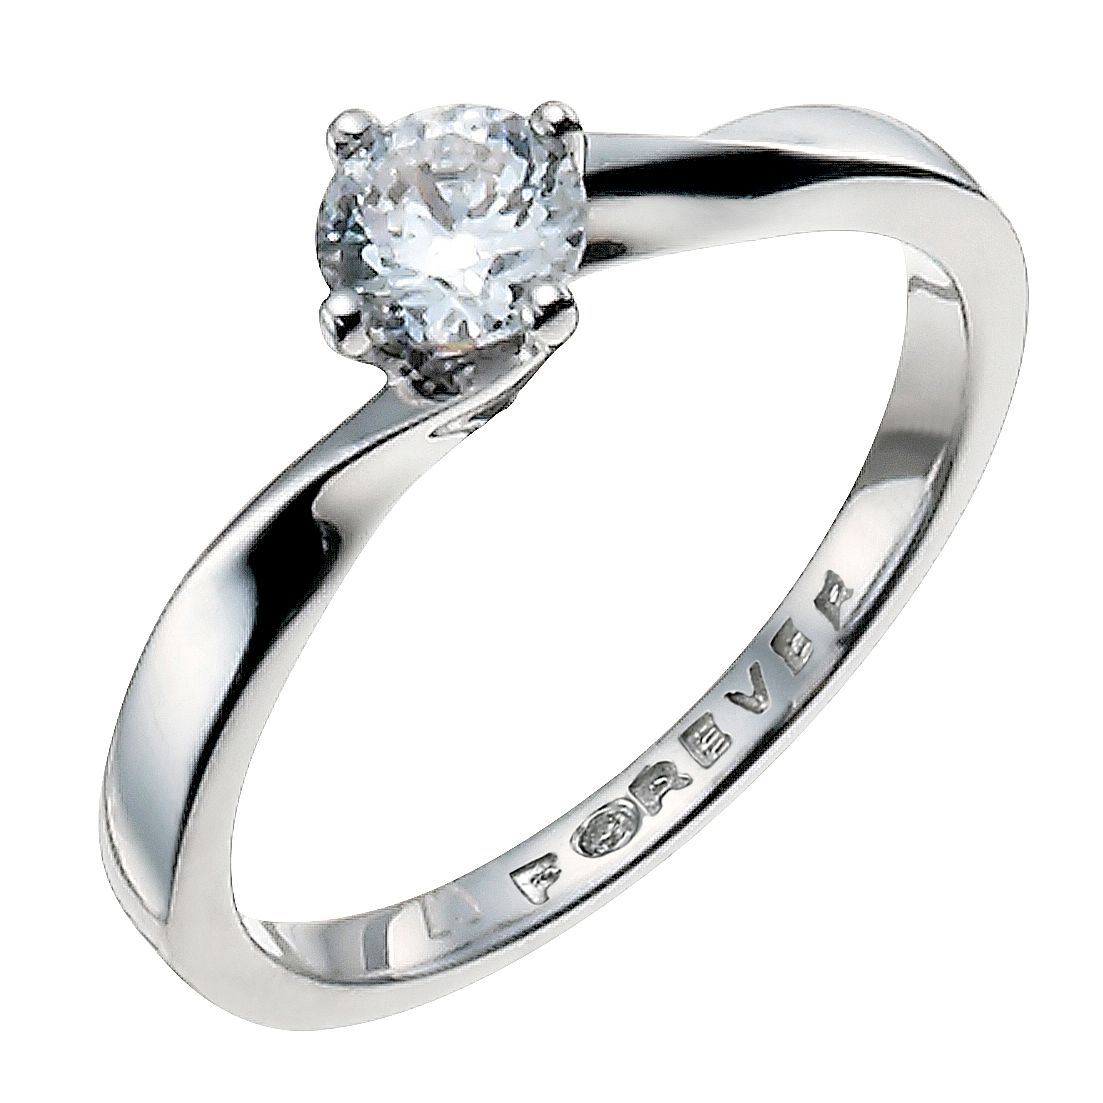 Palladium 1/3 Carat Forever Diamond Ring | H.Samuel